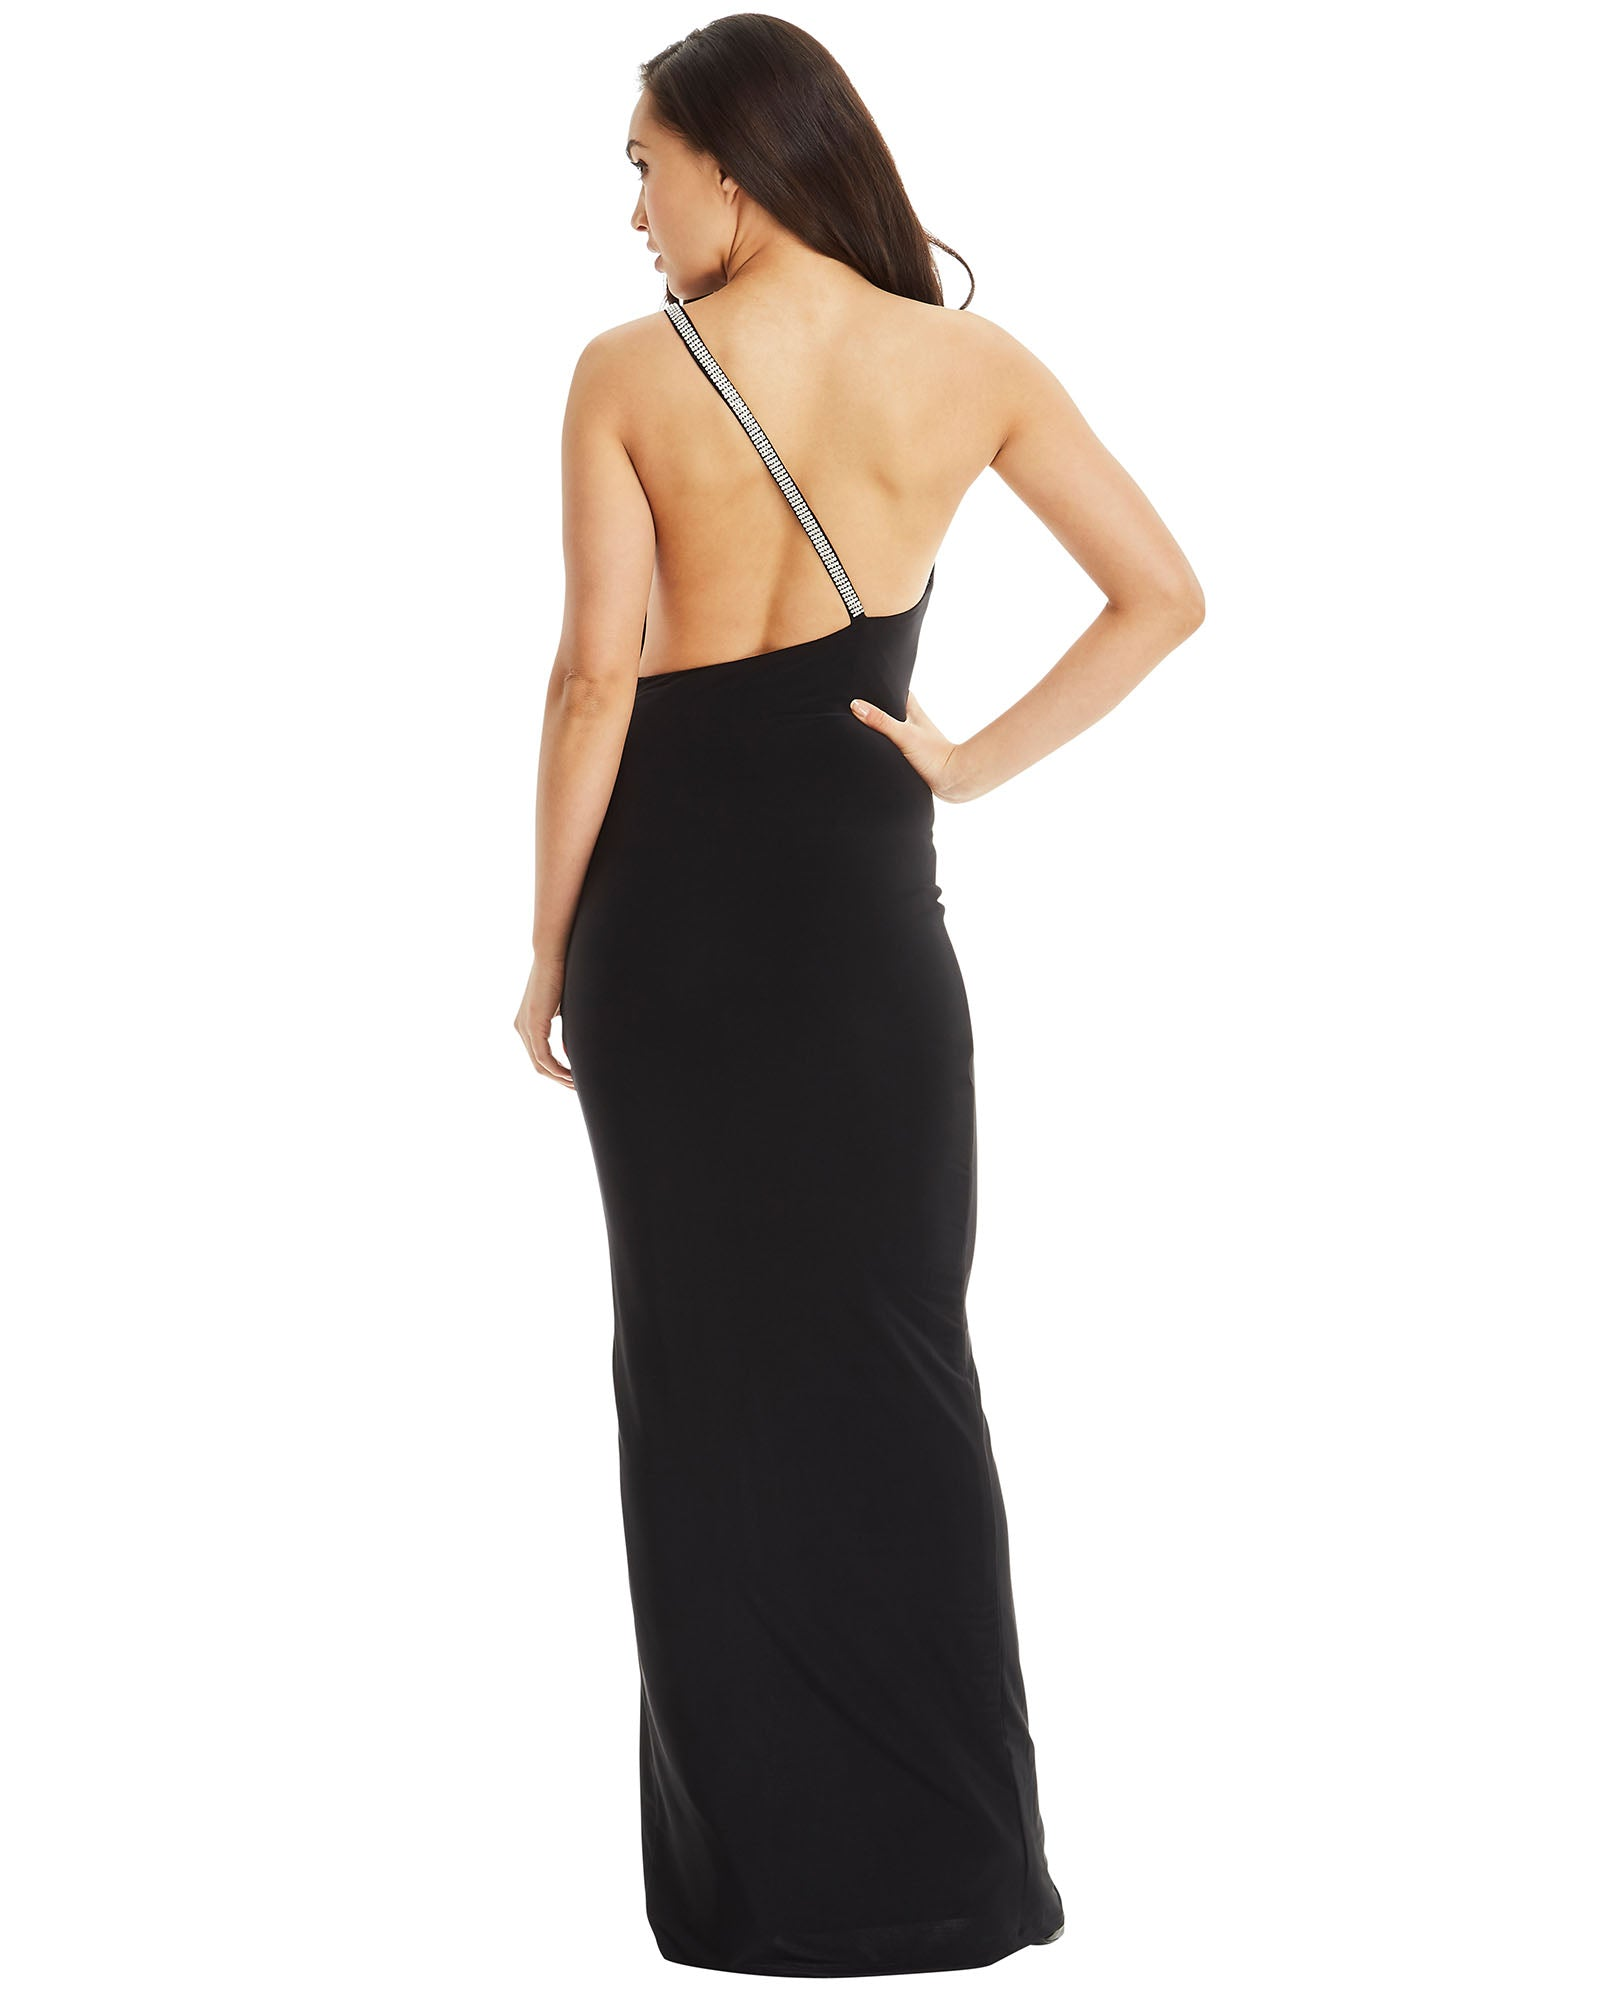 Crystal Jewel Strap Evening Dress - Black